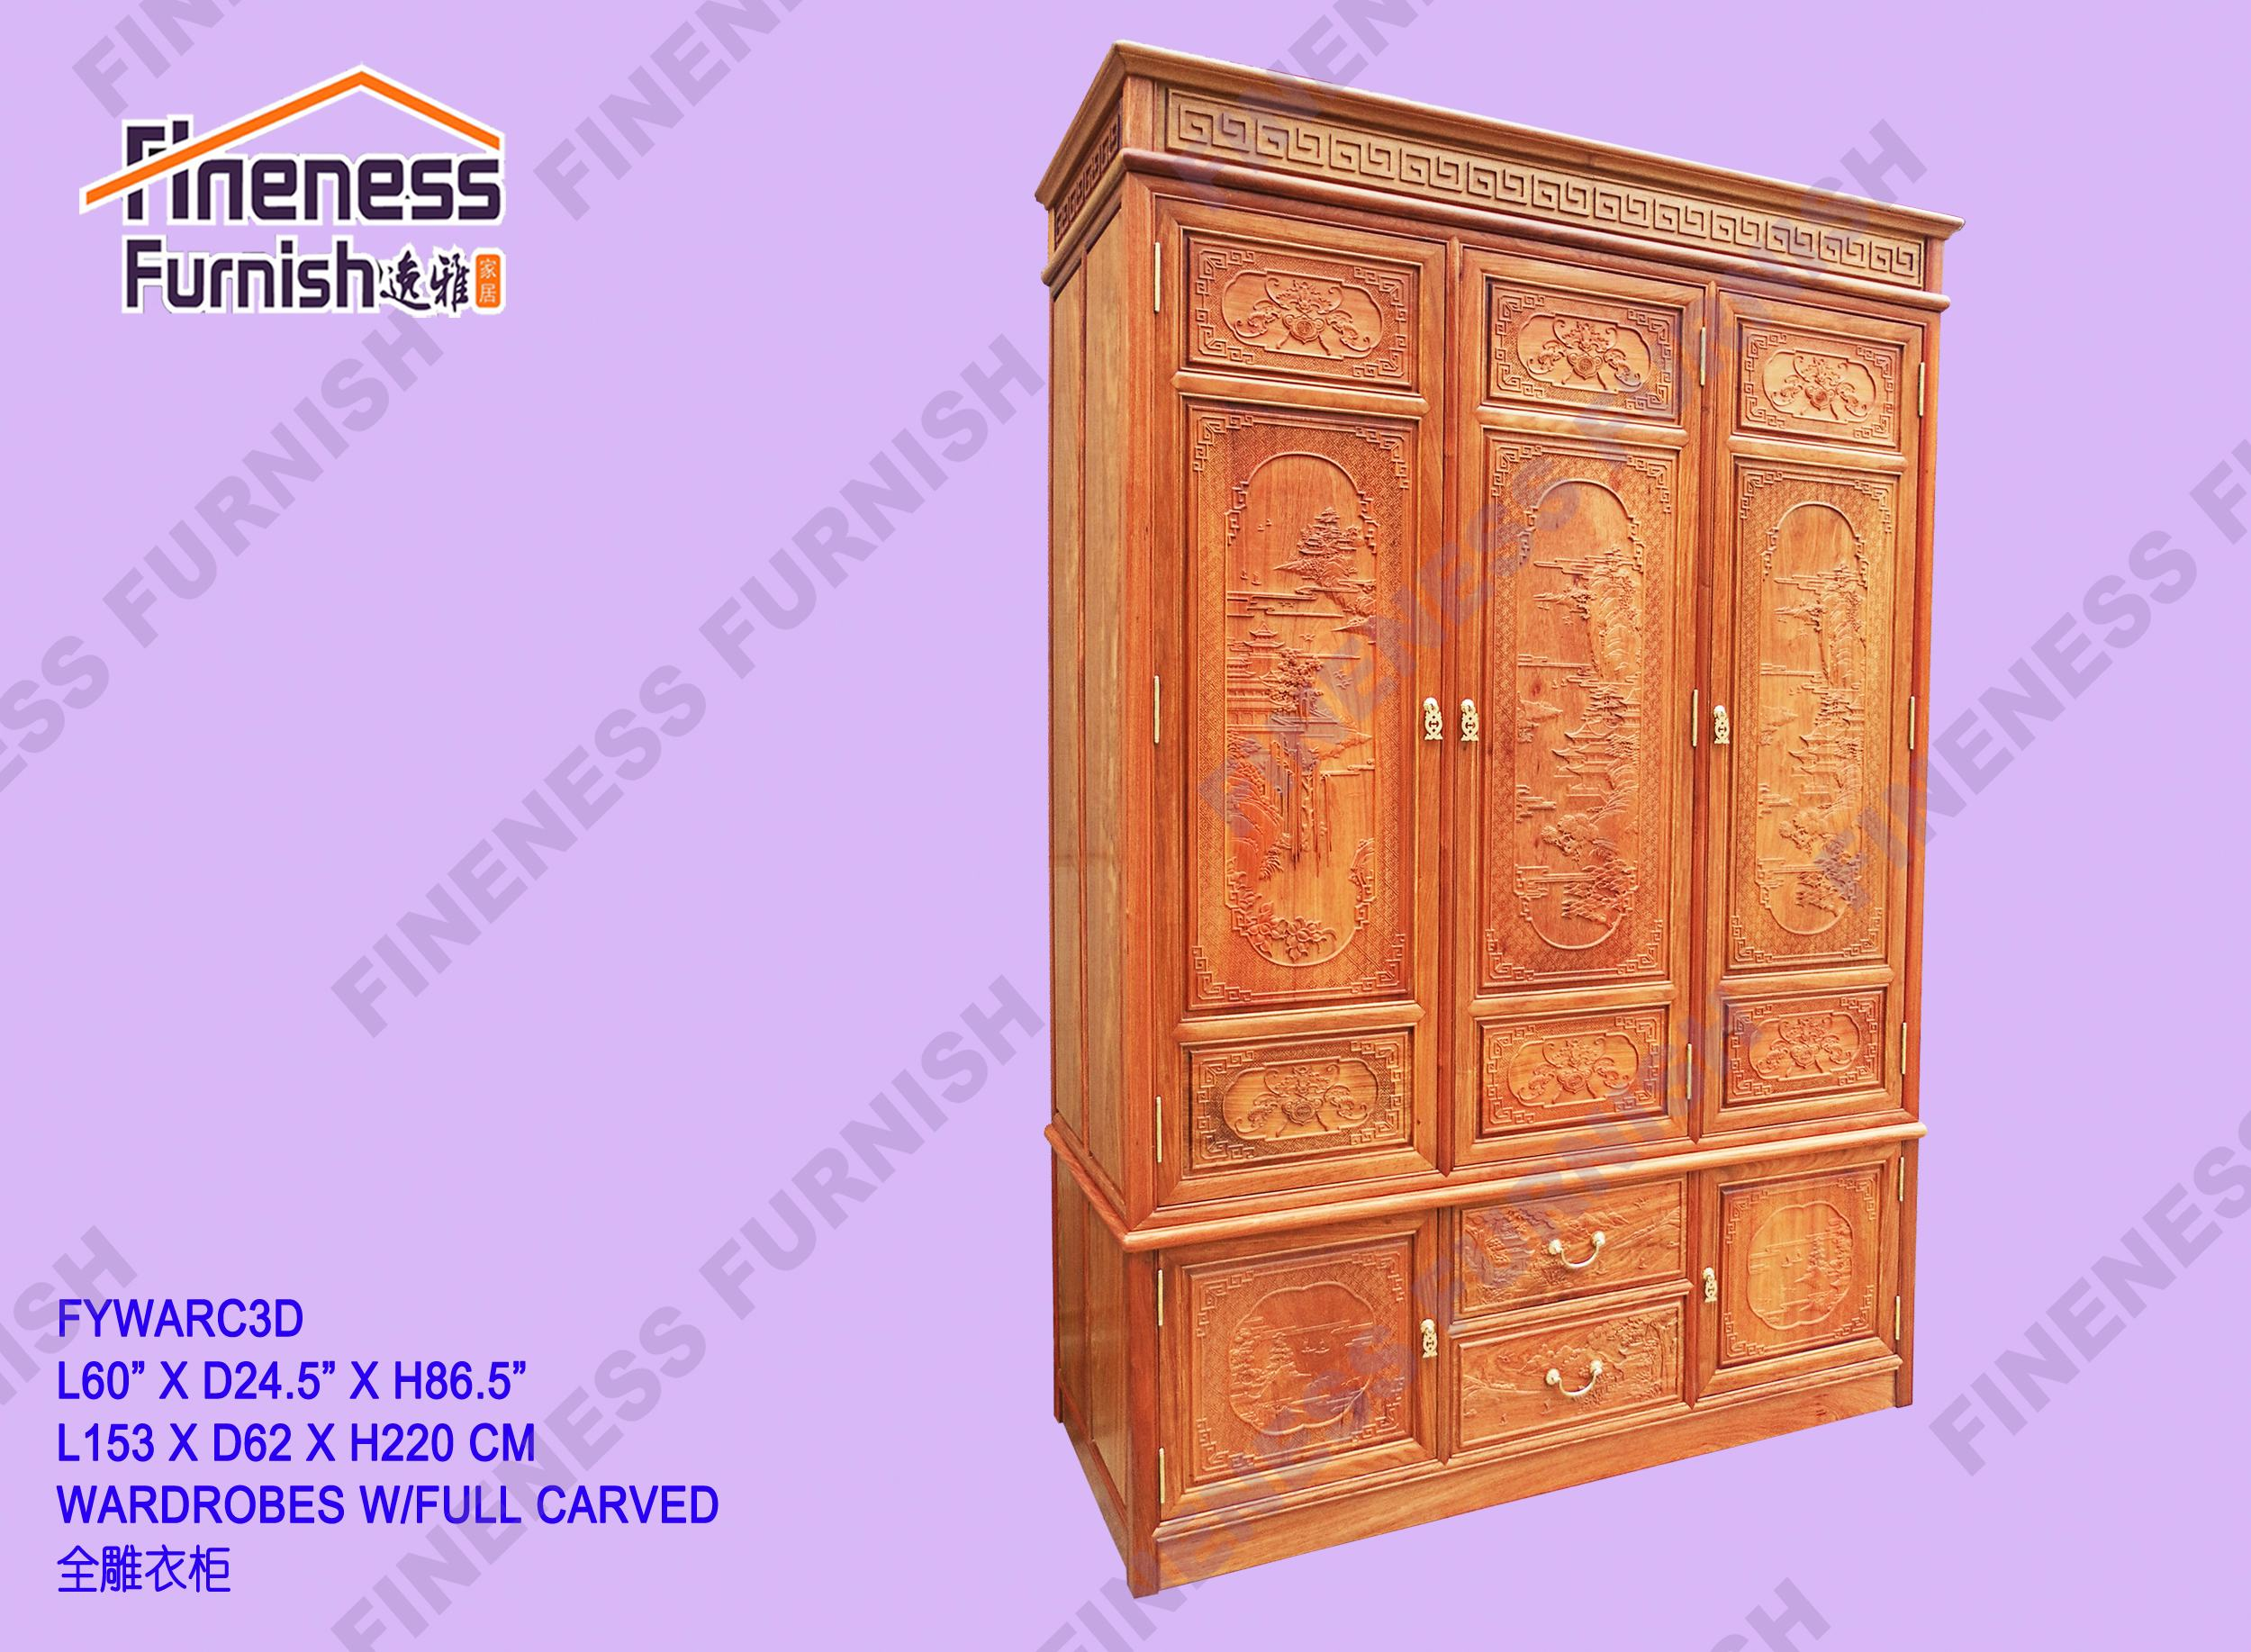 Wardrobe W/Full Carved -